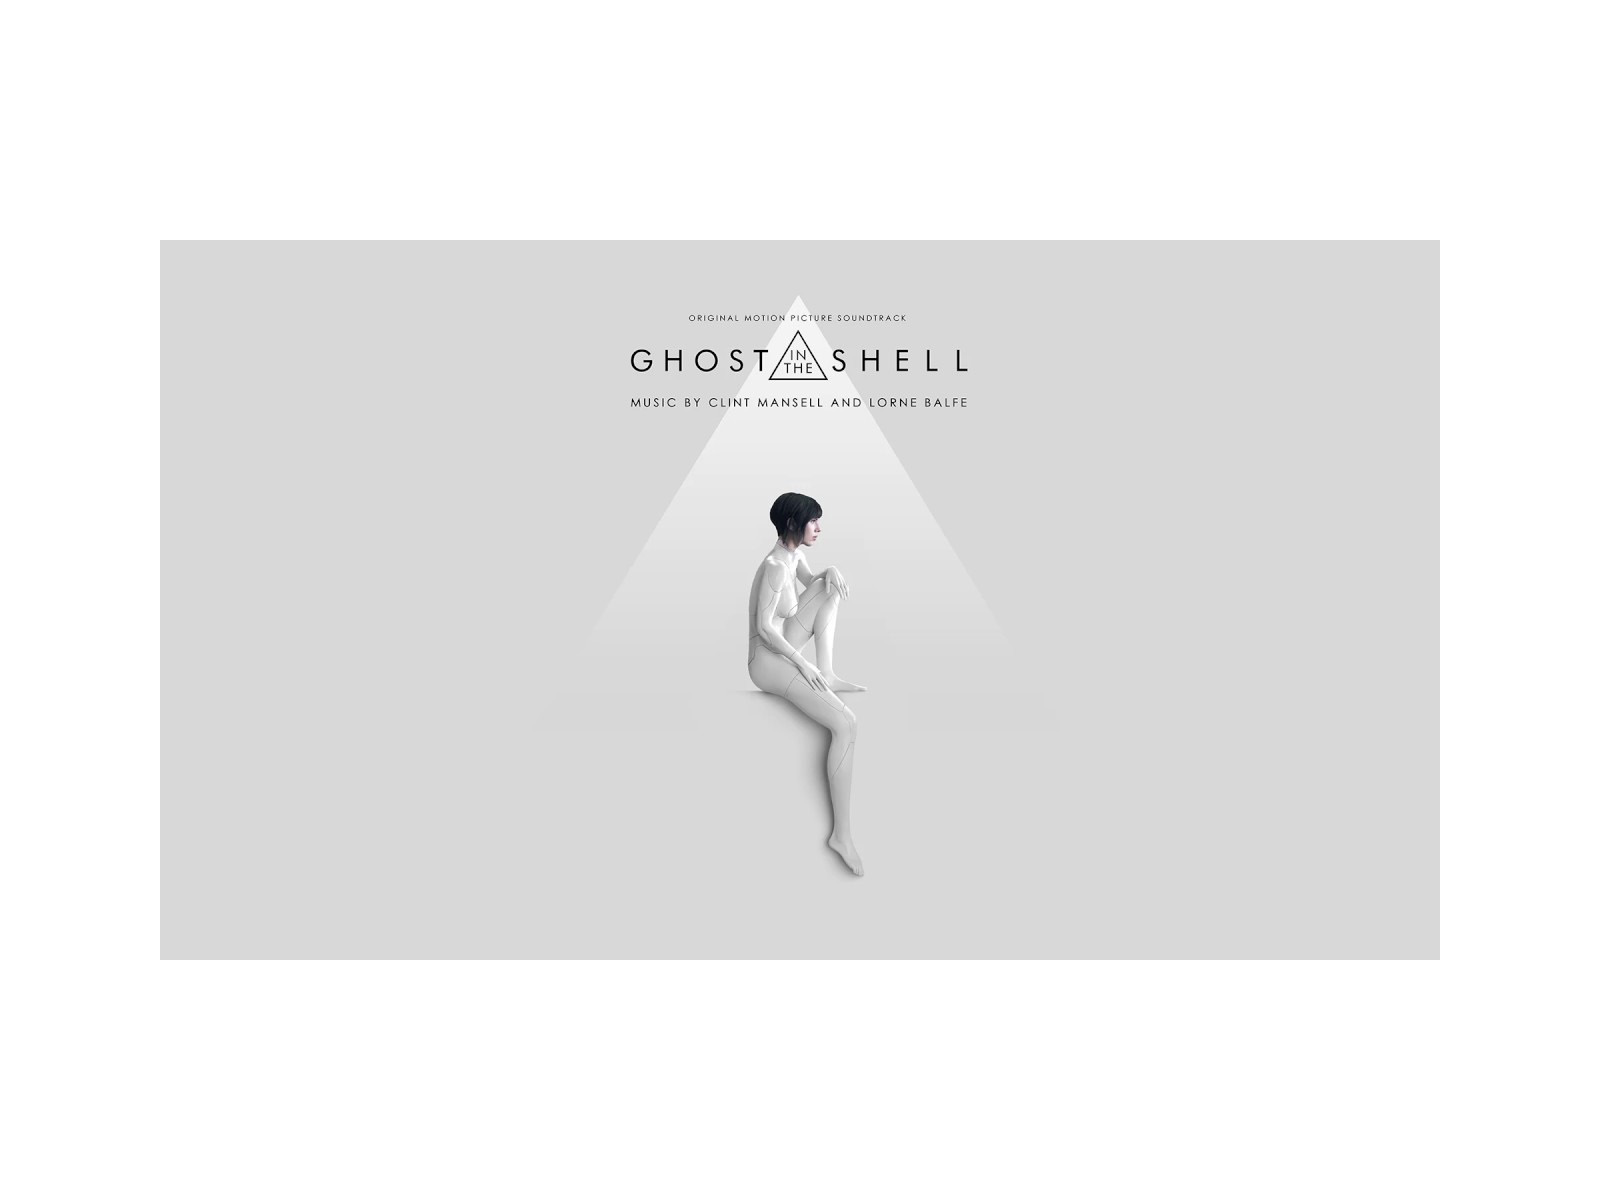 GHOST IN THE SHELL – OST by Client Mansell & Lorne Balfe